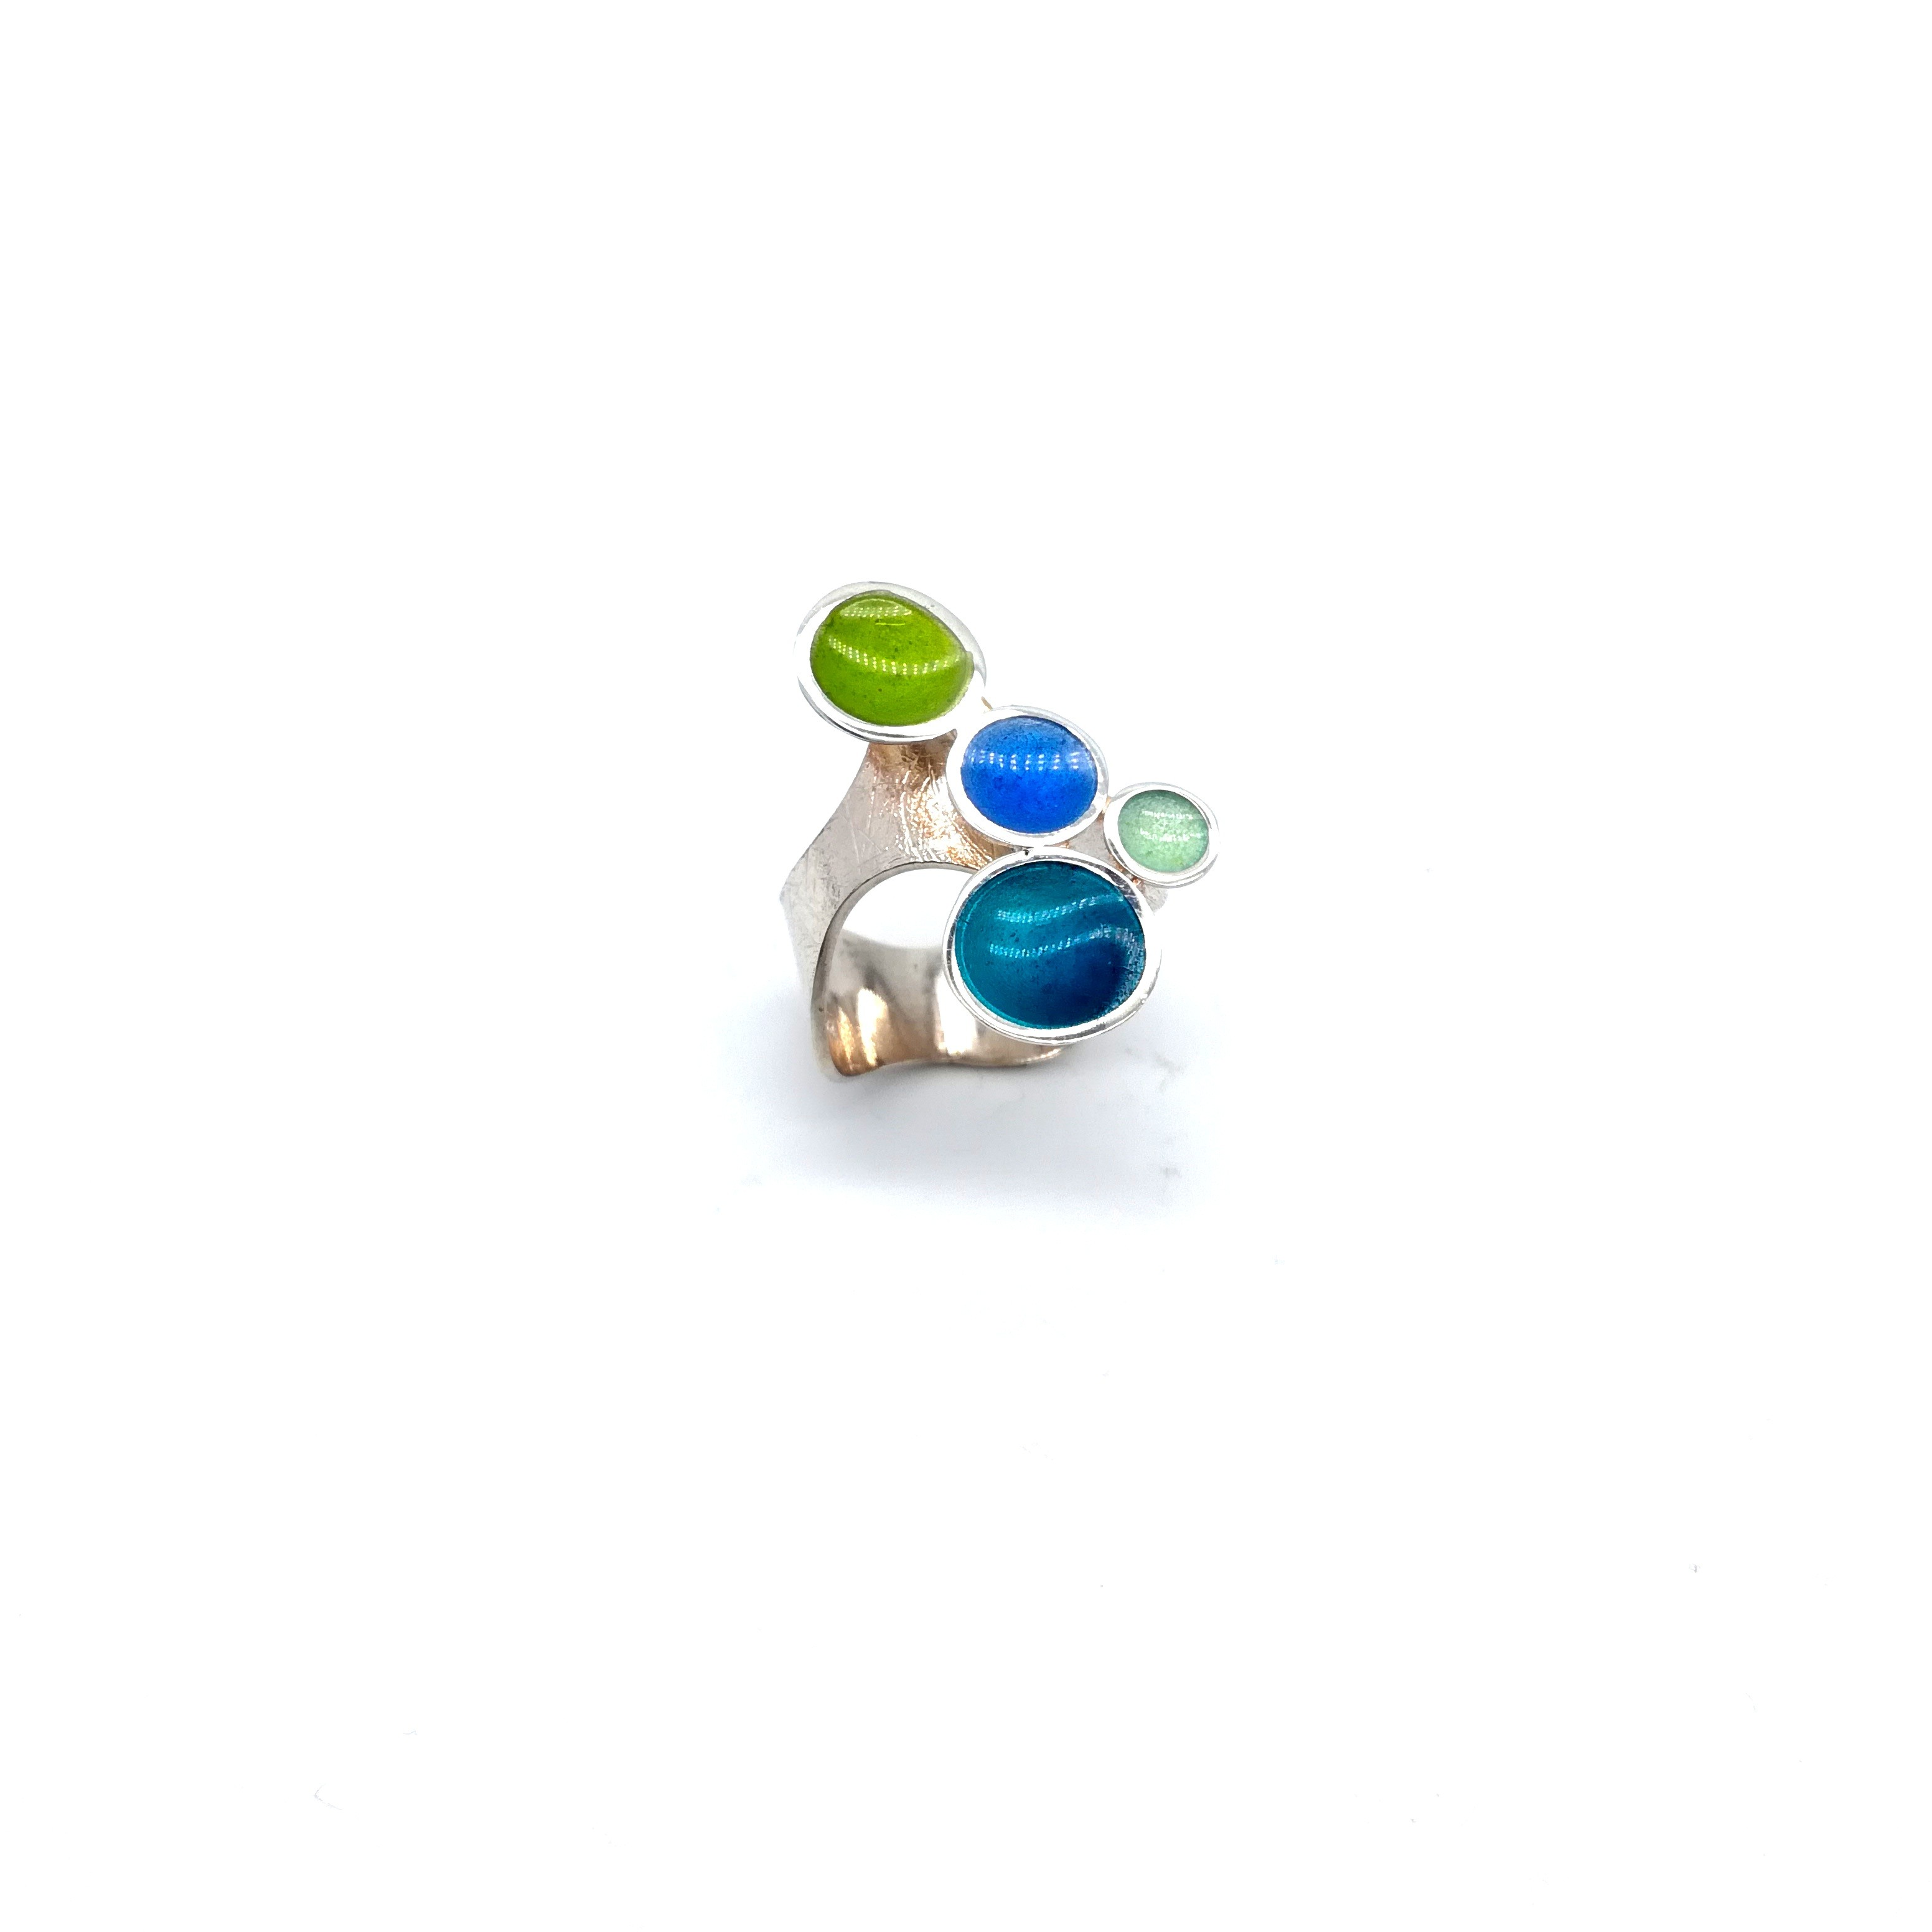 Silver ring 925 enameled with light blue and light green colors